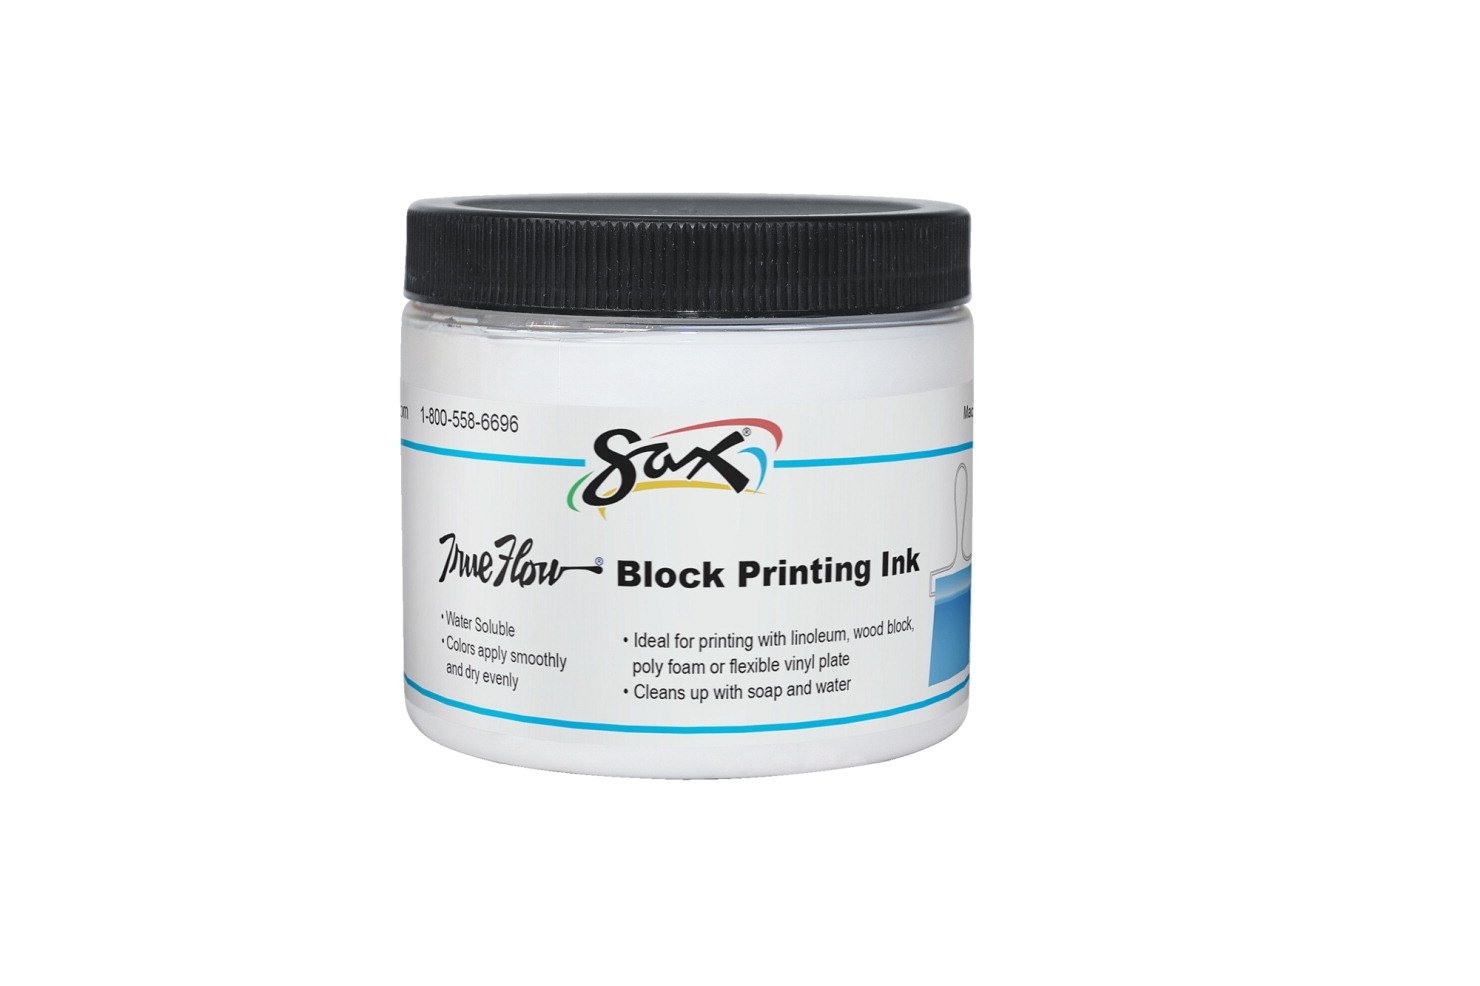 Sax True Flow Water Soluble Block Printing Ink - 16 Ounces - White by Sax (Image #1)